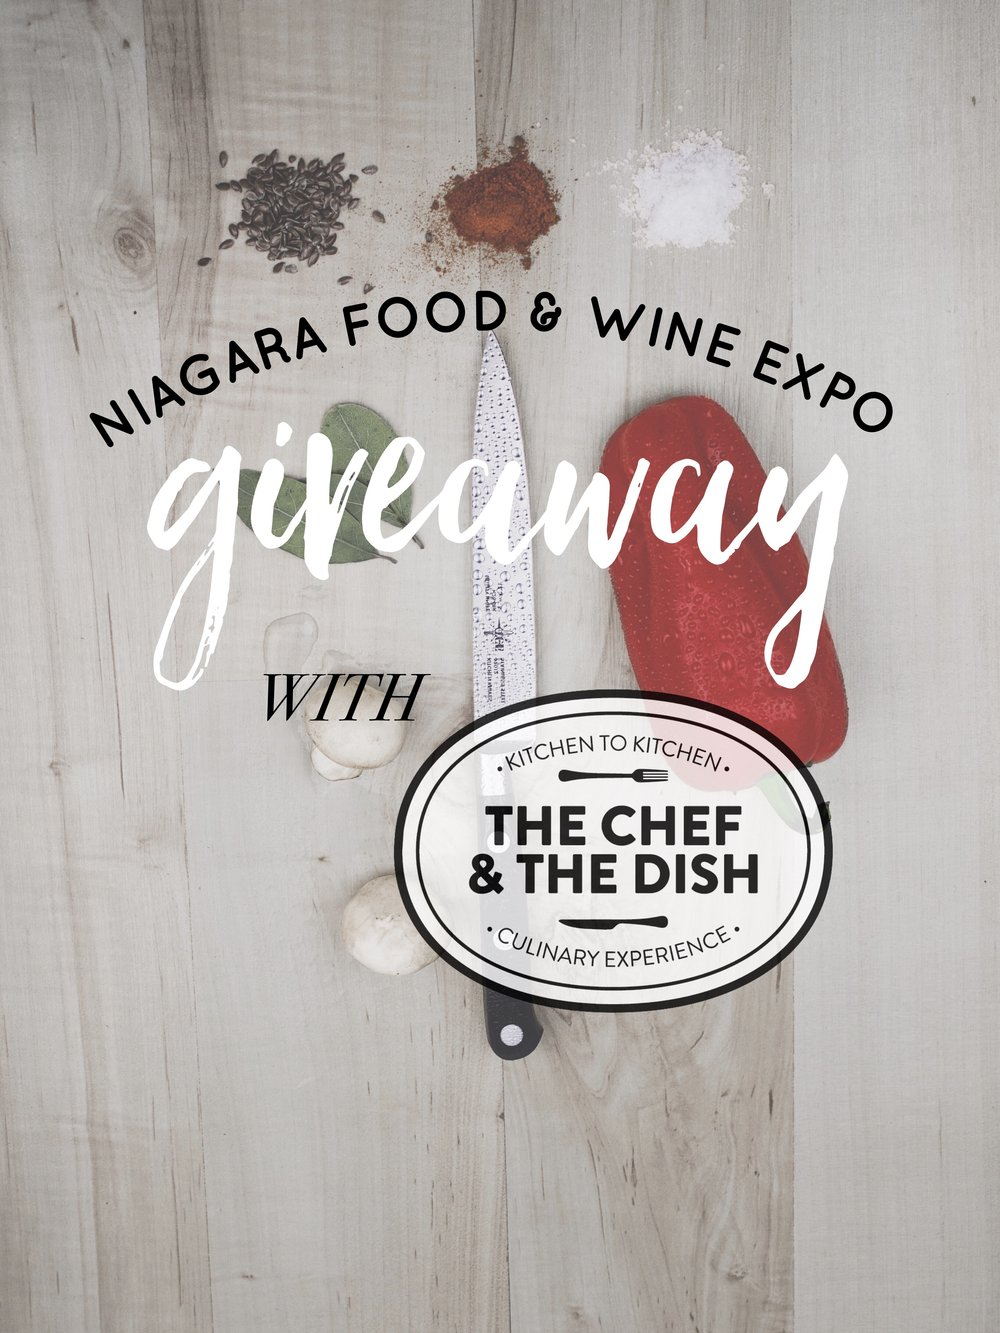 Head over to my Instagram to enter @luciavictoria!     Thanks to The Chef and The Dish I will be giving away 5 pairs of tickets to Niagara Food & Wine Expo! To be eligible to win you must be at least 19 and complete the following:    1. Like my giveaway post and follow me.     2. Follow @thechefandthedish.    3. Comment & tell me: what's your favorite dish to cook at home?     I will notify winners via DM on Saturday, April 8. You'll be able to pick which day of the expo you'd like to attend and your tickets will be held at will call.